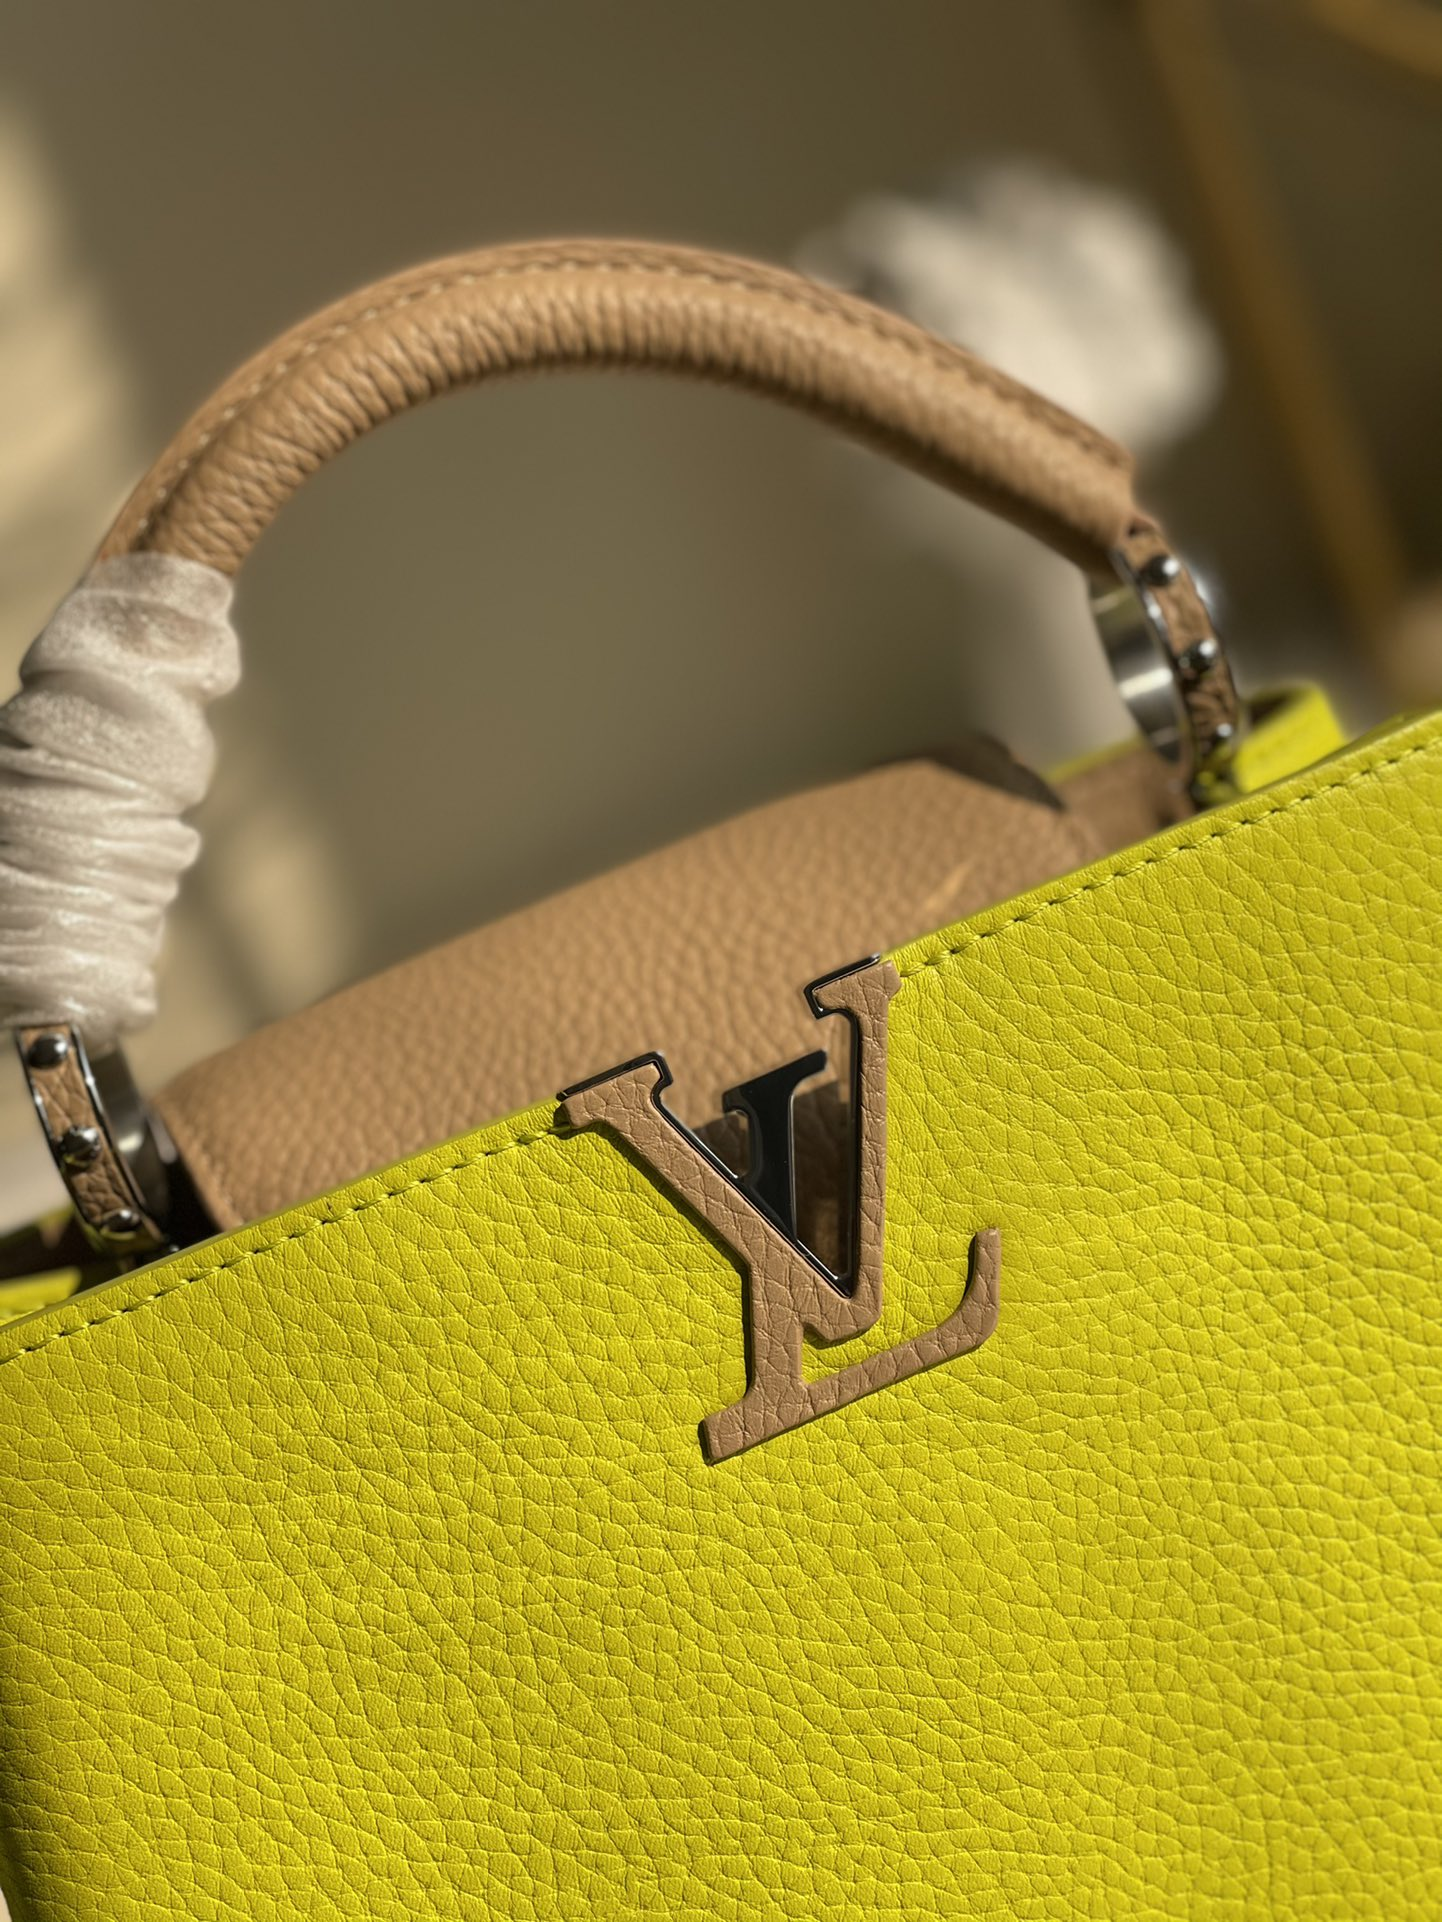 Replica Louis Vuitton M548865 Capucines BB Handbag Fluorescent Yellow Coquille Beige Taurillon Leather